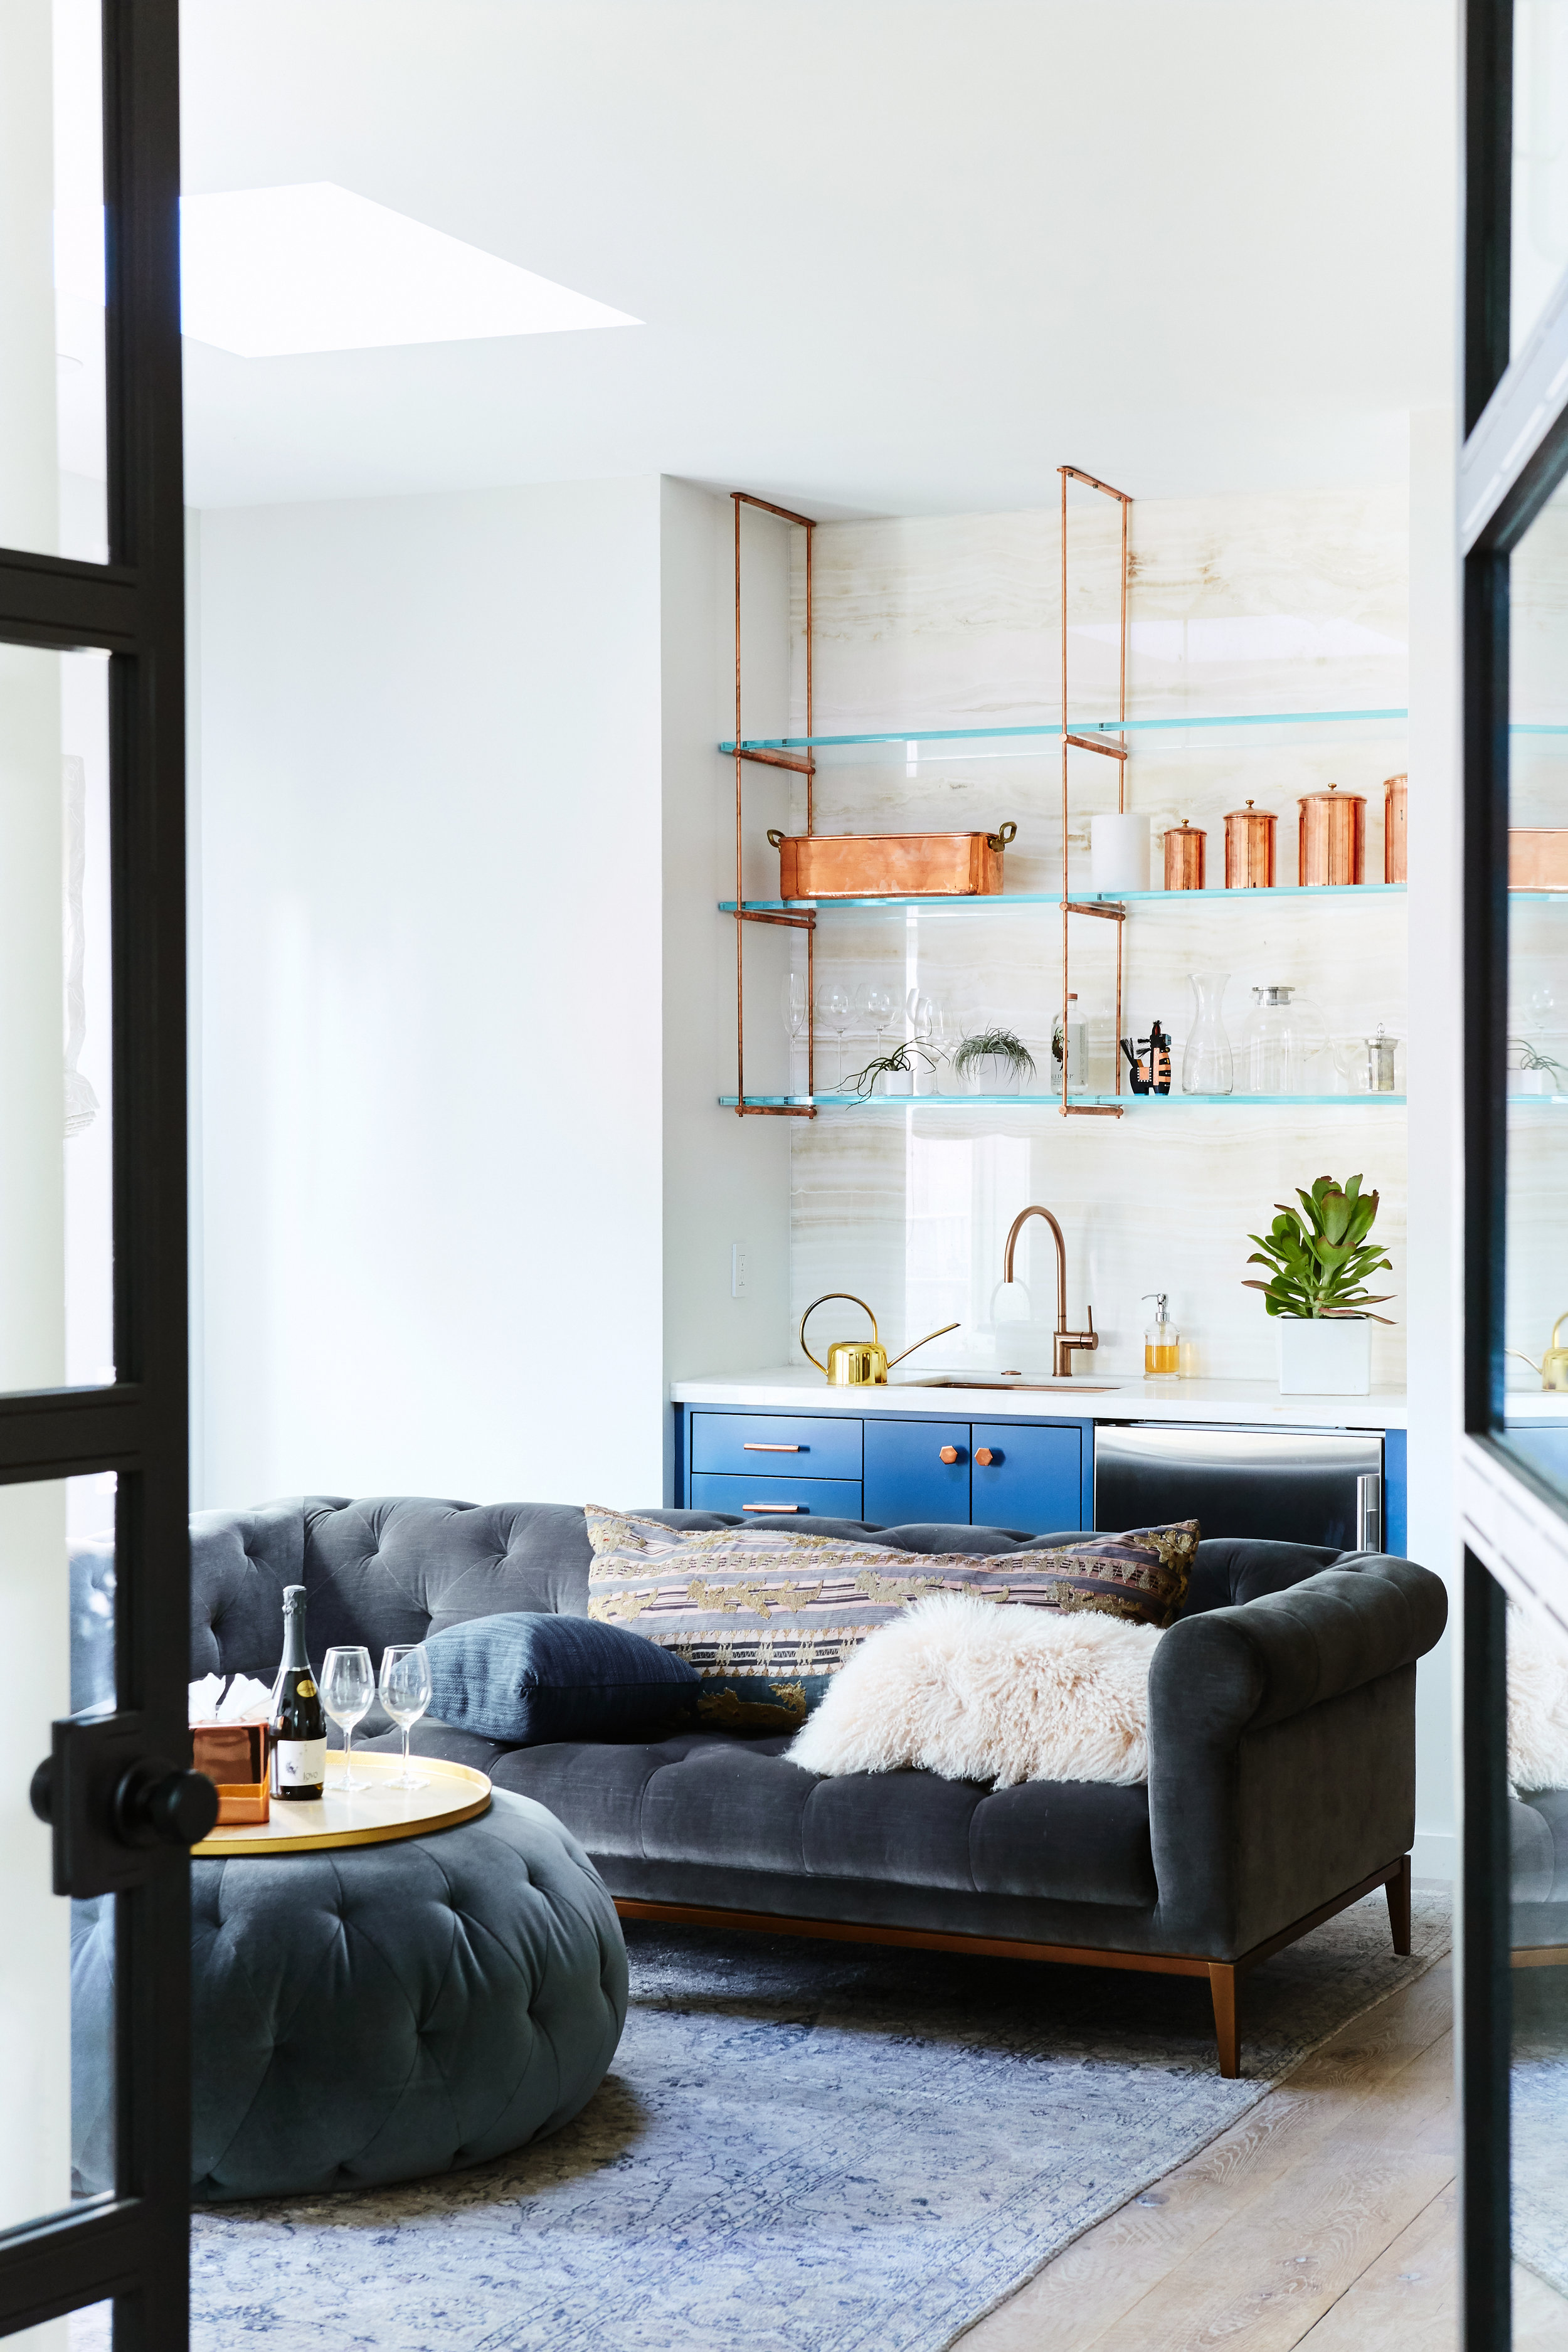 Noz Design - Pac Heights House with a Roof - Copper kitchenette lounge.jpg